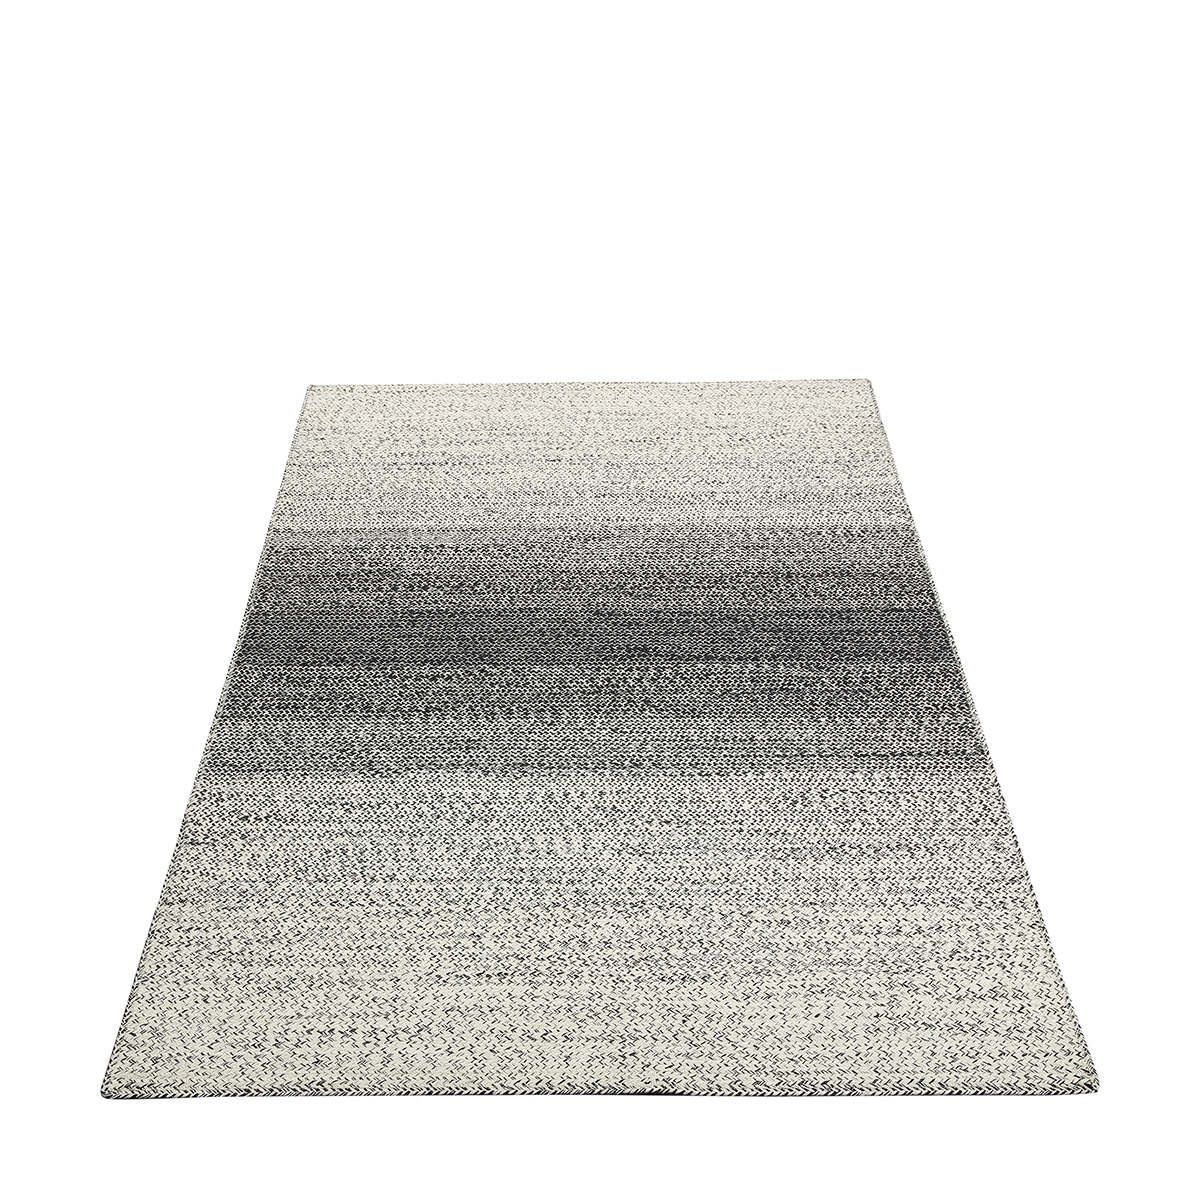 Kmart Rugs Carpets Area Rug Ideas